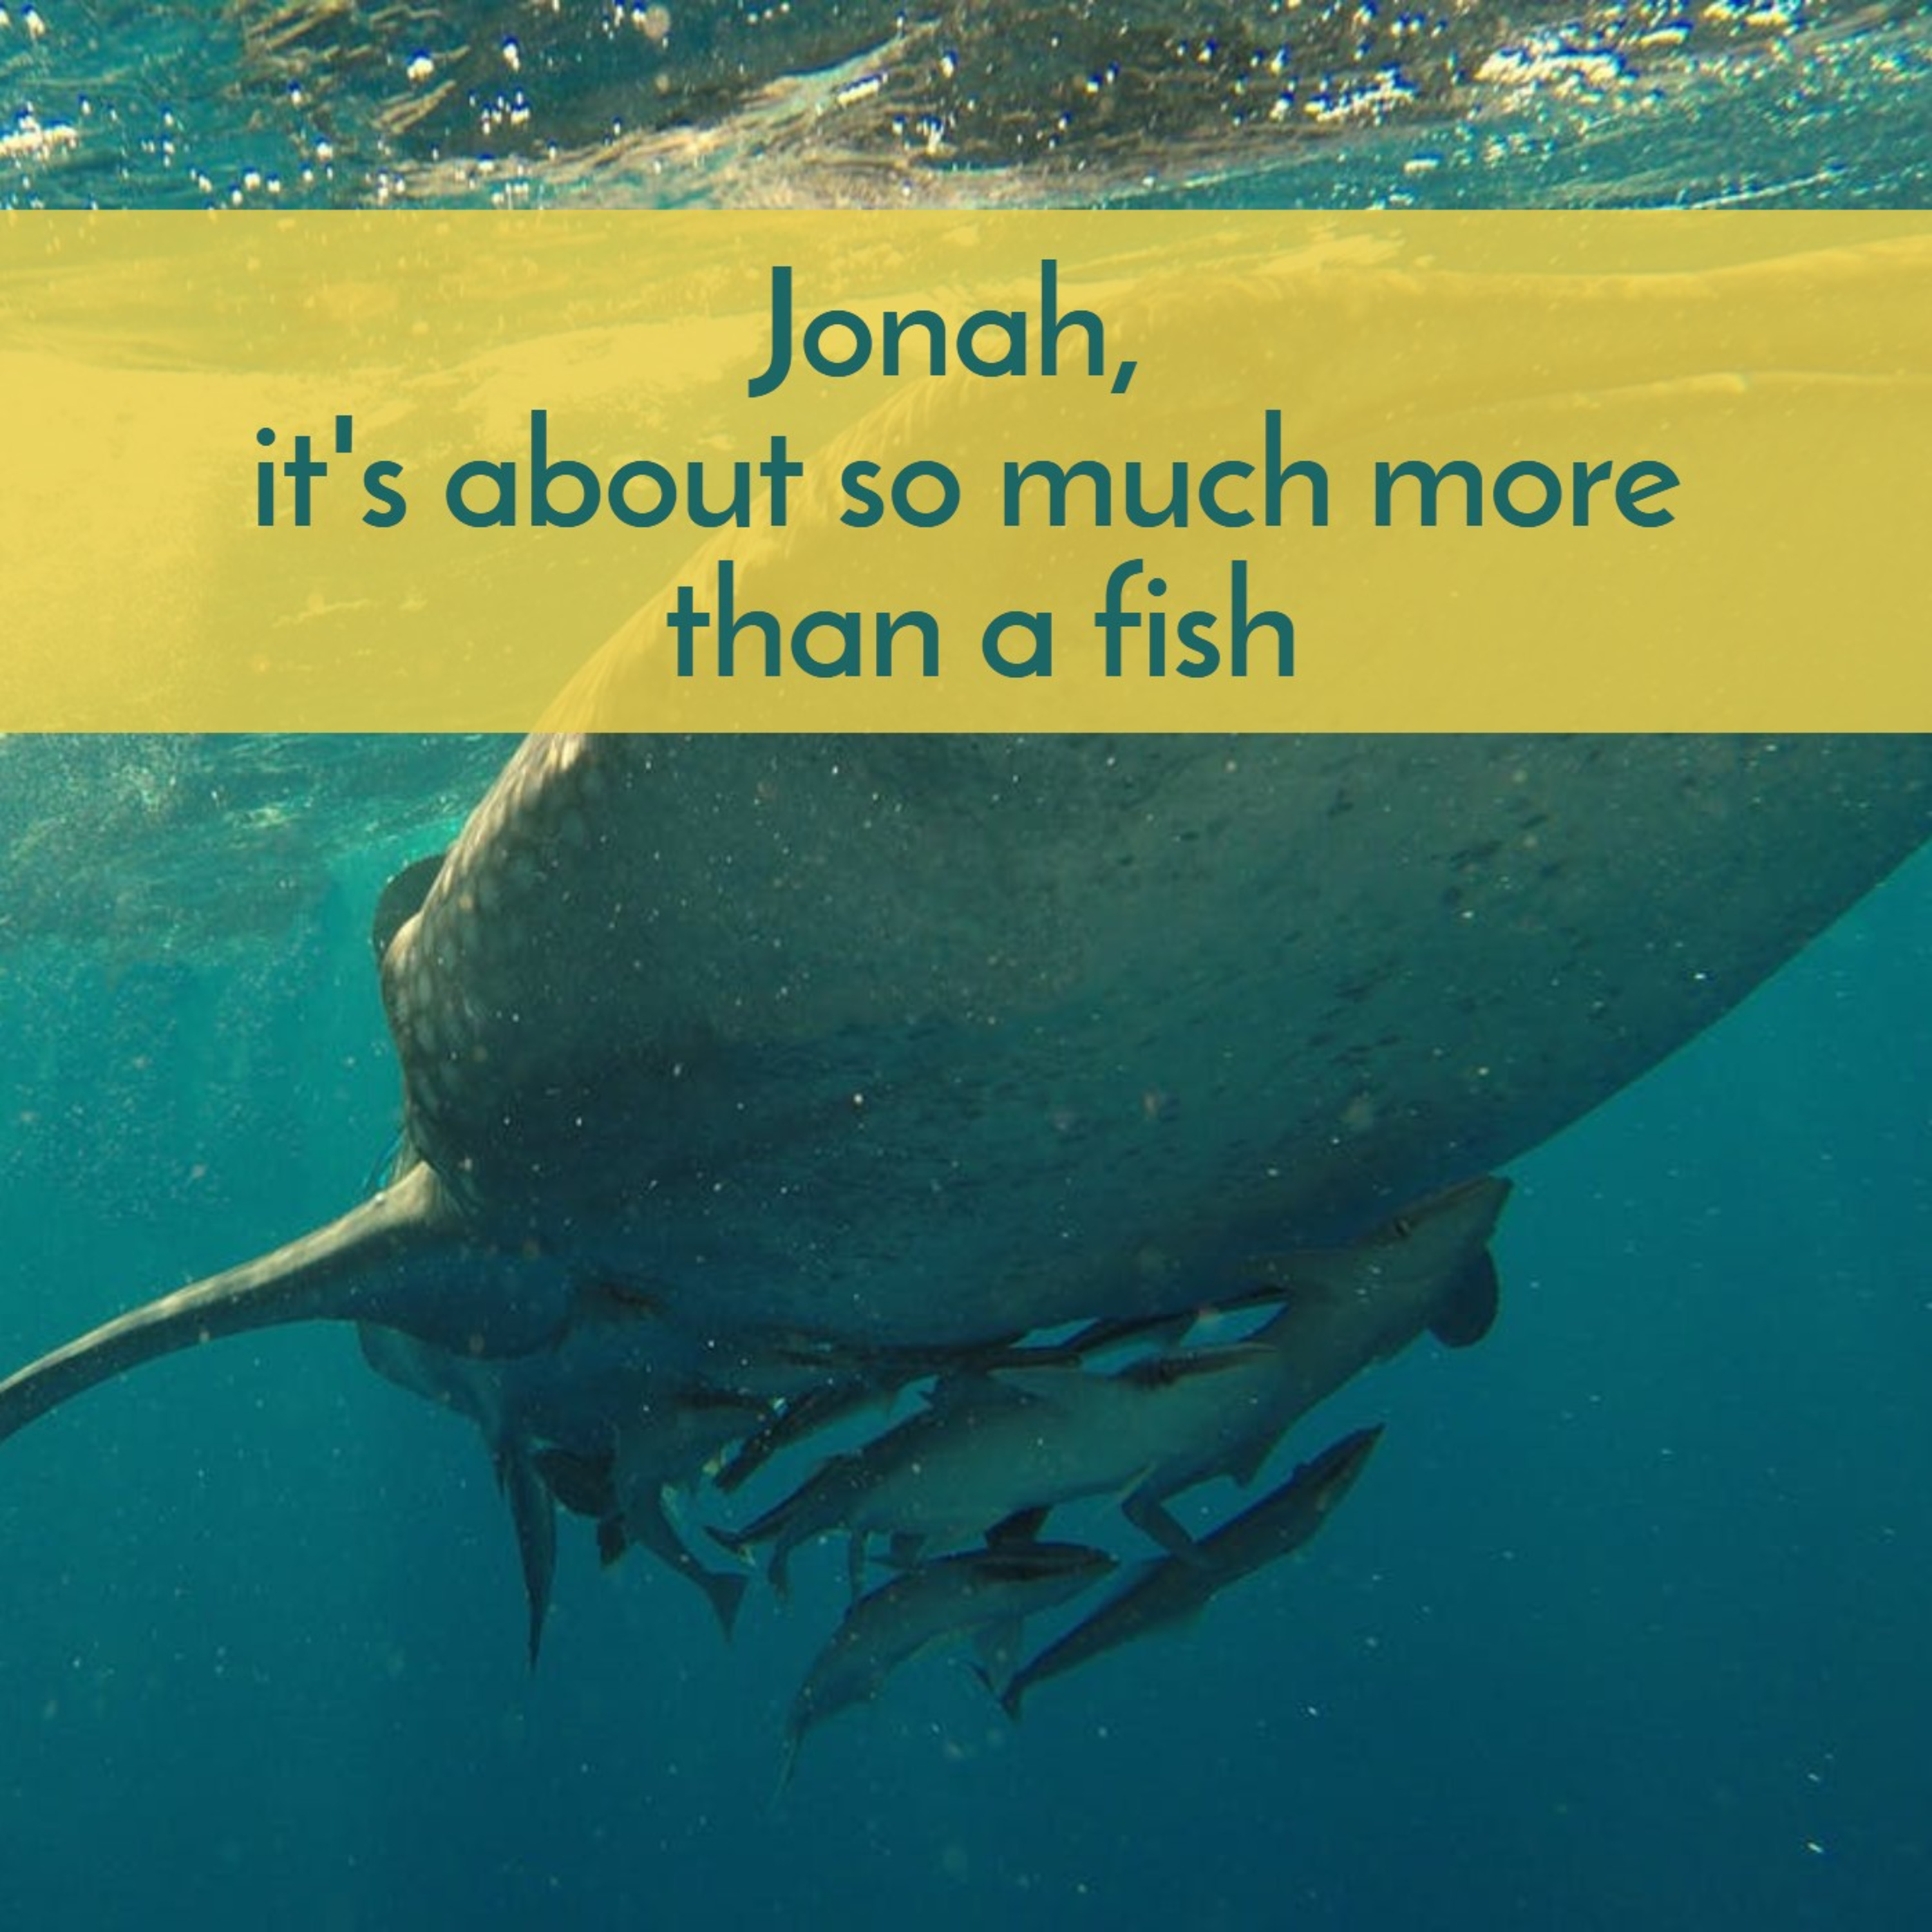 #39 Jonah, about so much more than a fish